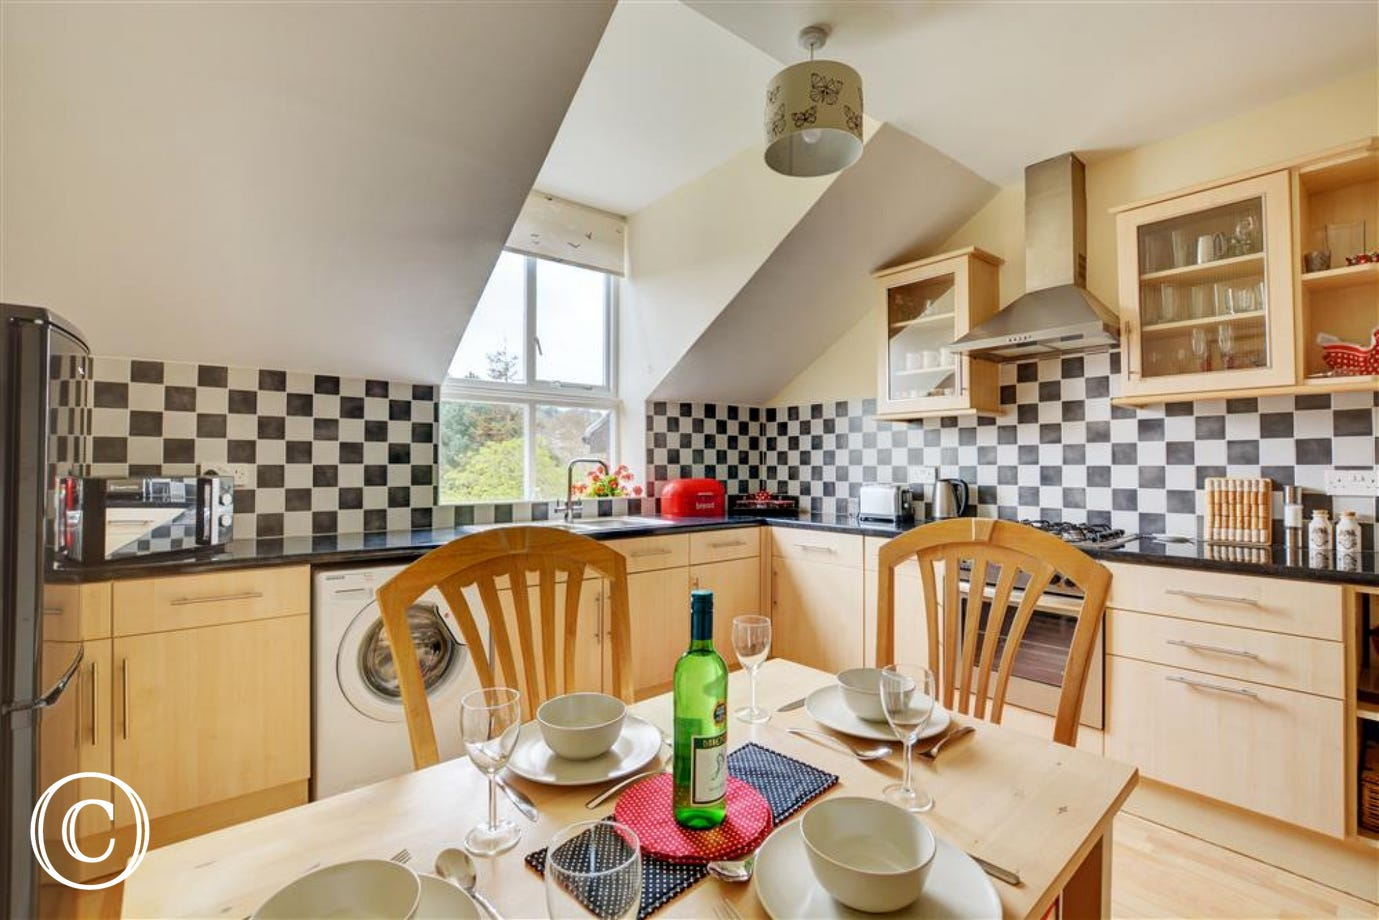 Kitchen and Dining Area electric built-in oven, gas hob, fridge/freezer, microwave, washer dryer, dining table and chairs